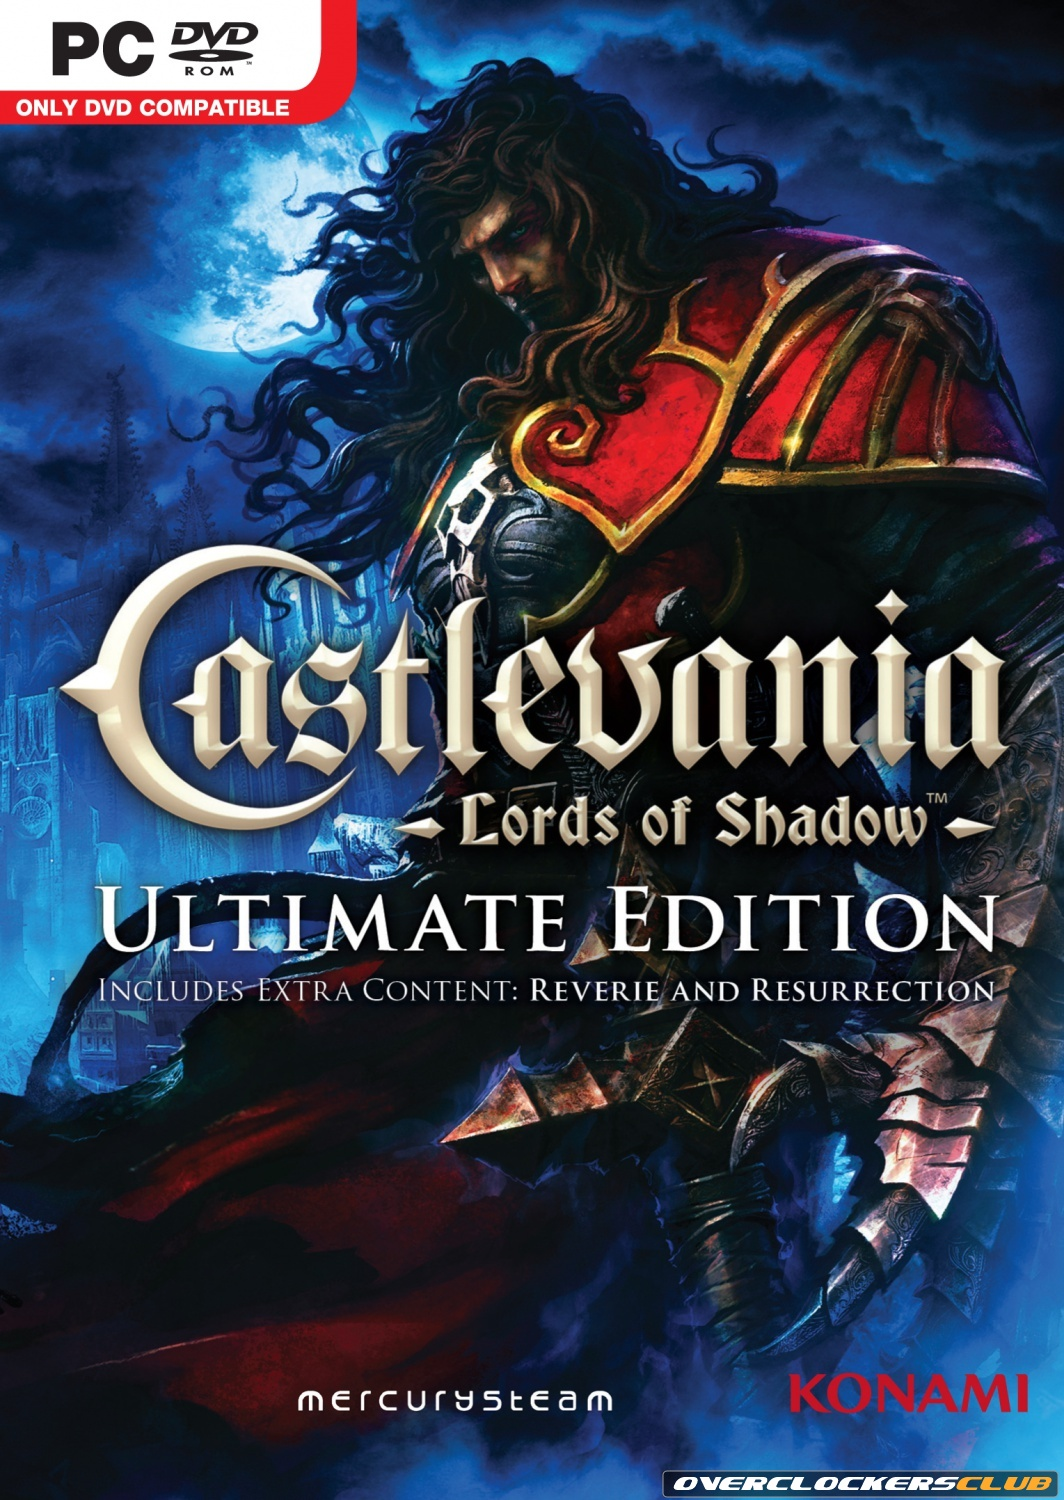 Castlevania: Lords of Shadow: Ultimate Edition Coming to PC on August 27